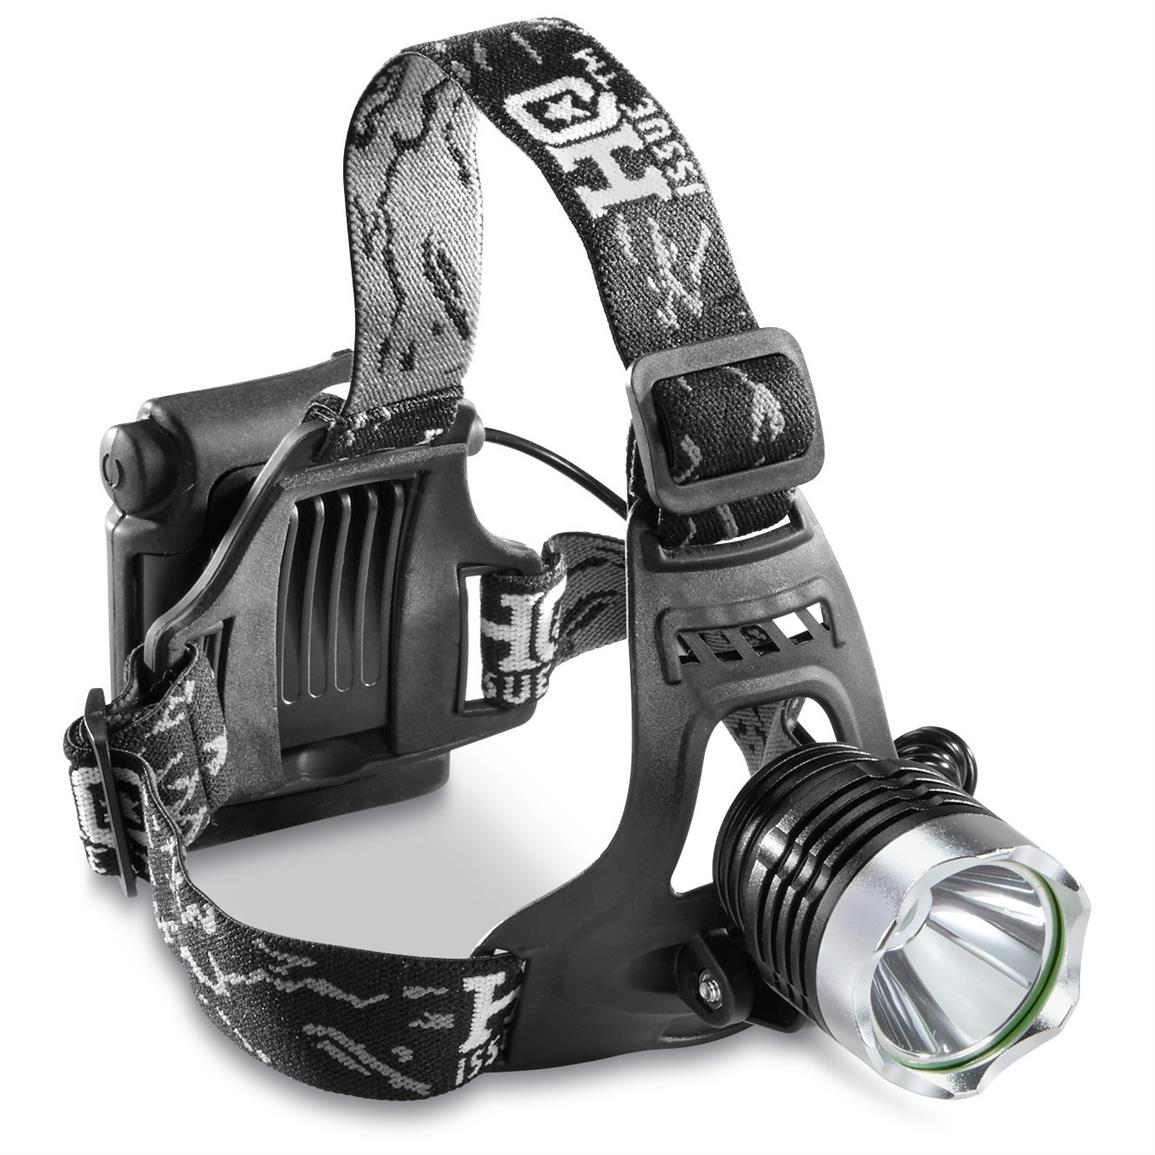 HQ Issue High Power CREE Headlamp, 500 Lumen